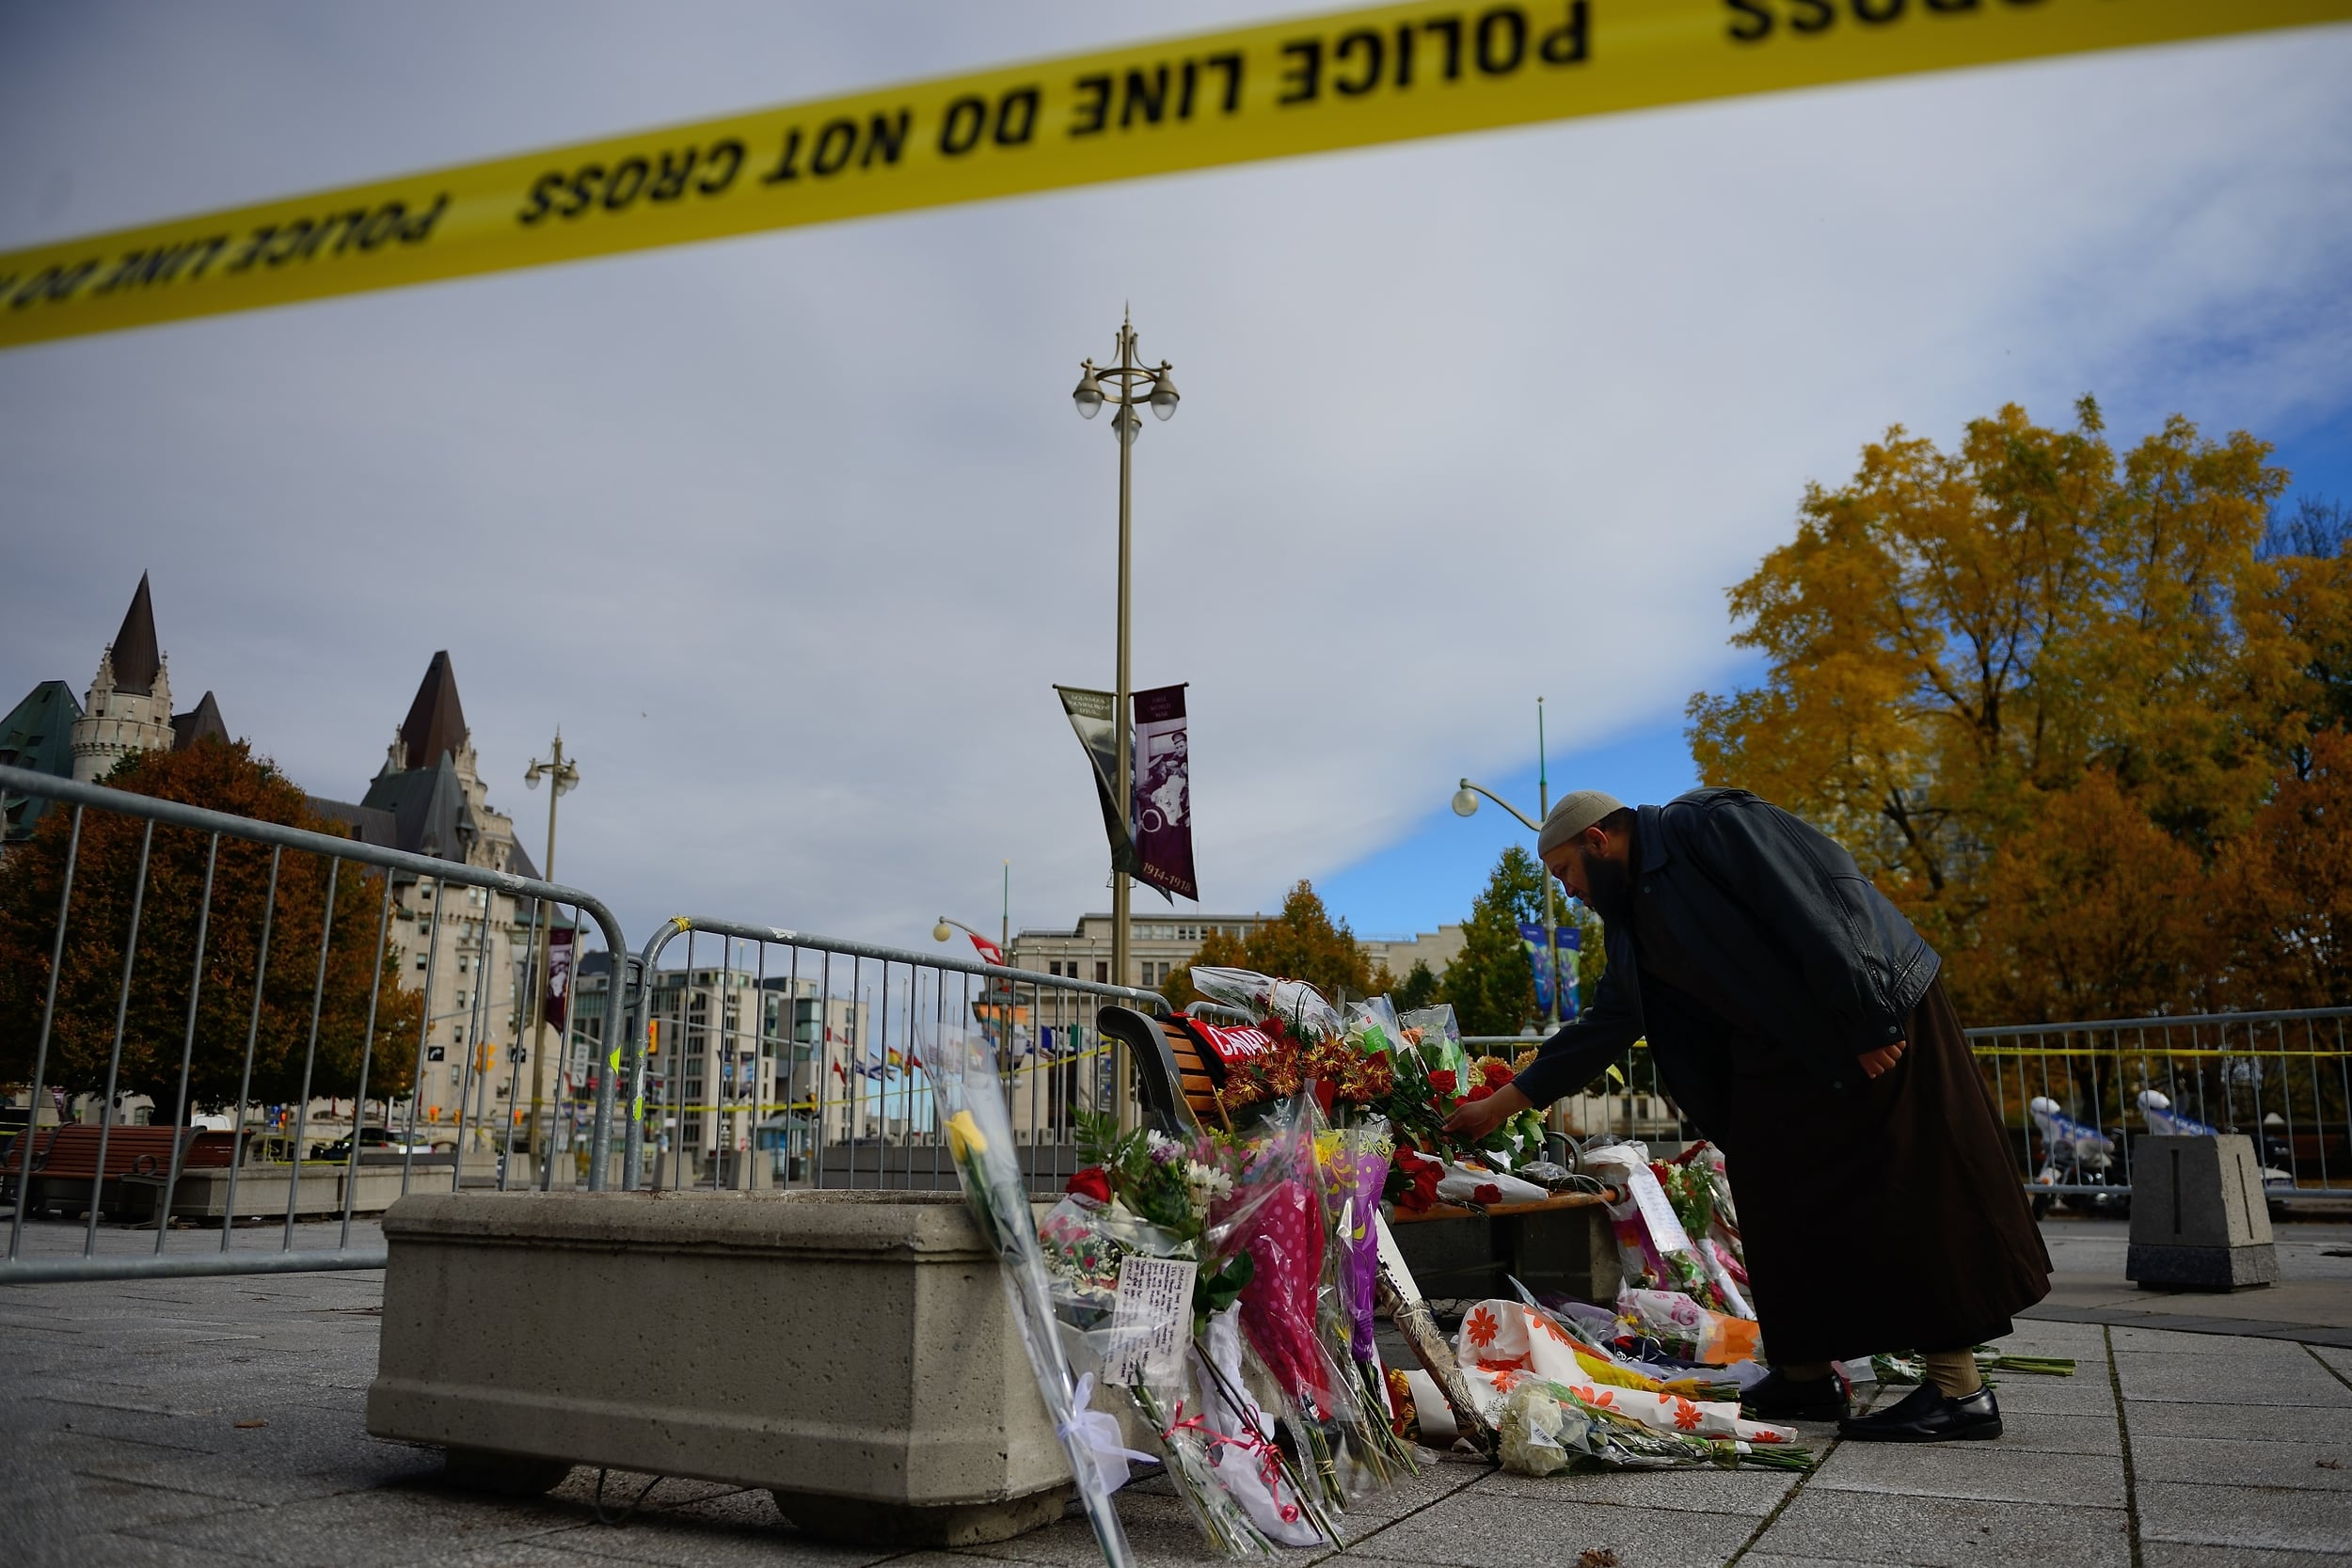 Flowers left at the National War Memorial where Corporal Nathan Cirillo was fatally shot by lone gunman Michael Zehaf-Bibeau on October 22, 2014. (combat camera)